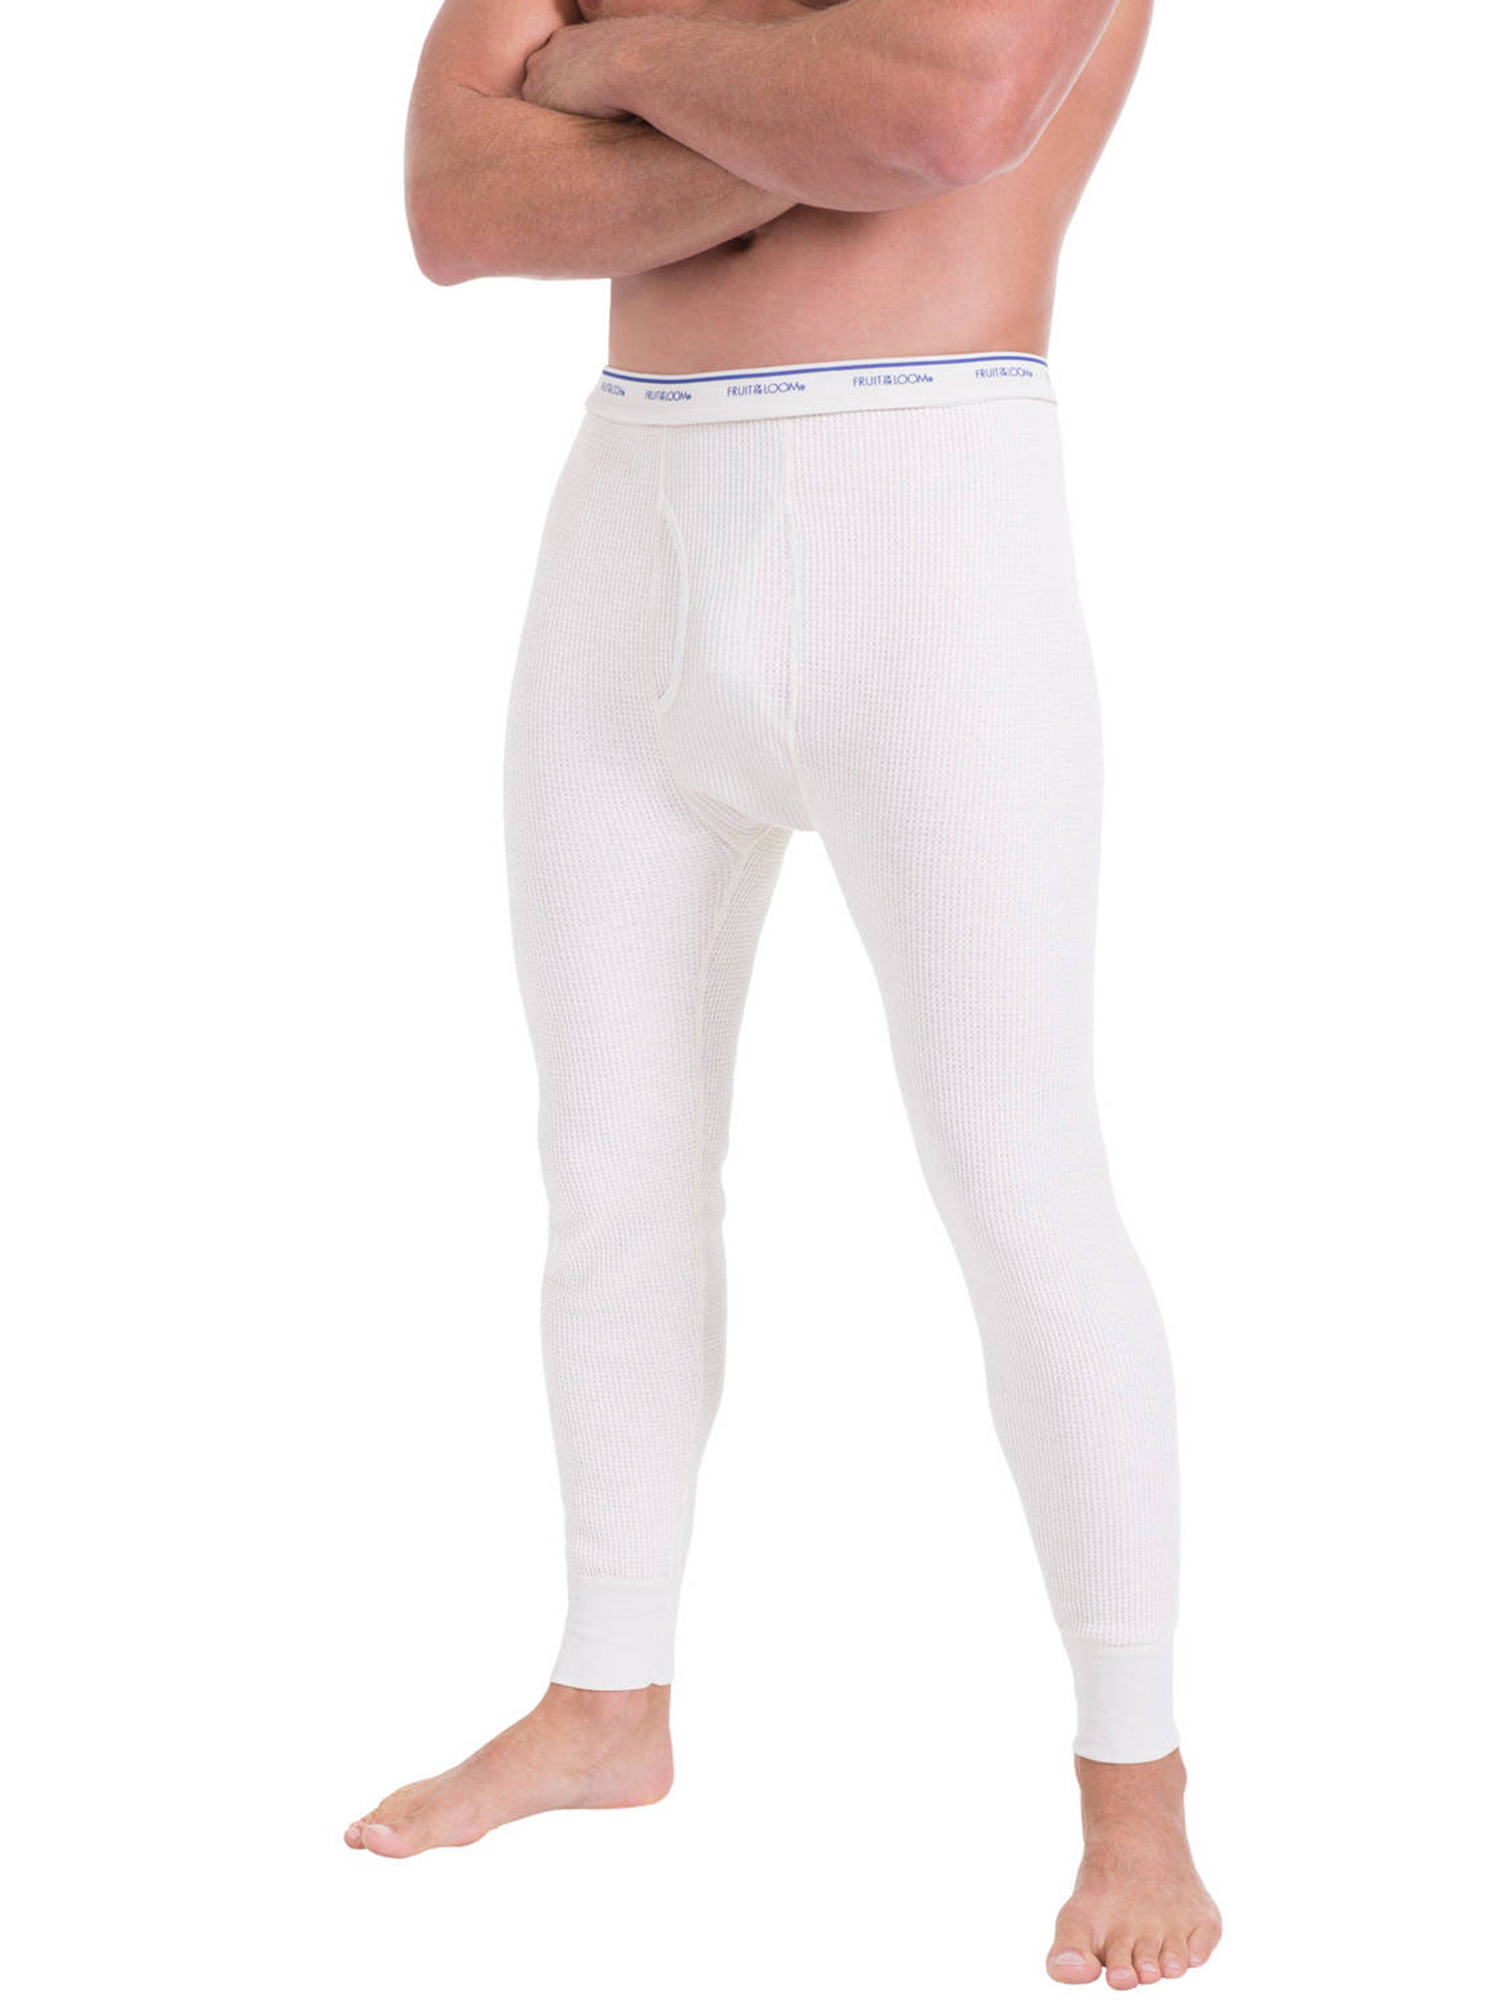 Men's Classic Thermal Underwear Bottom